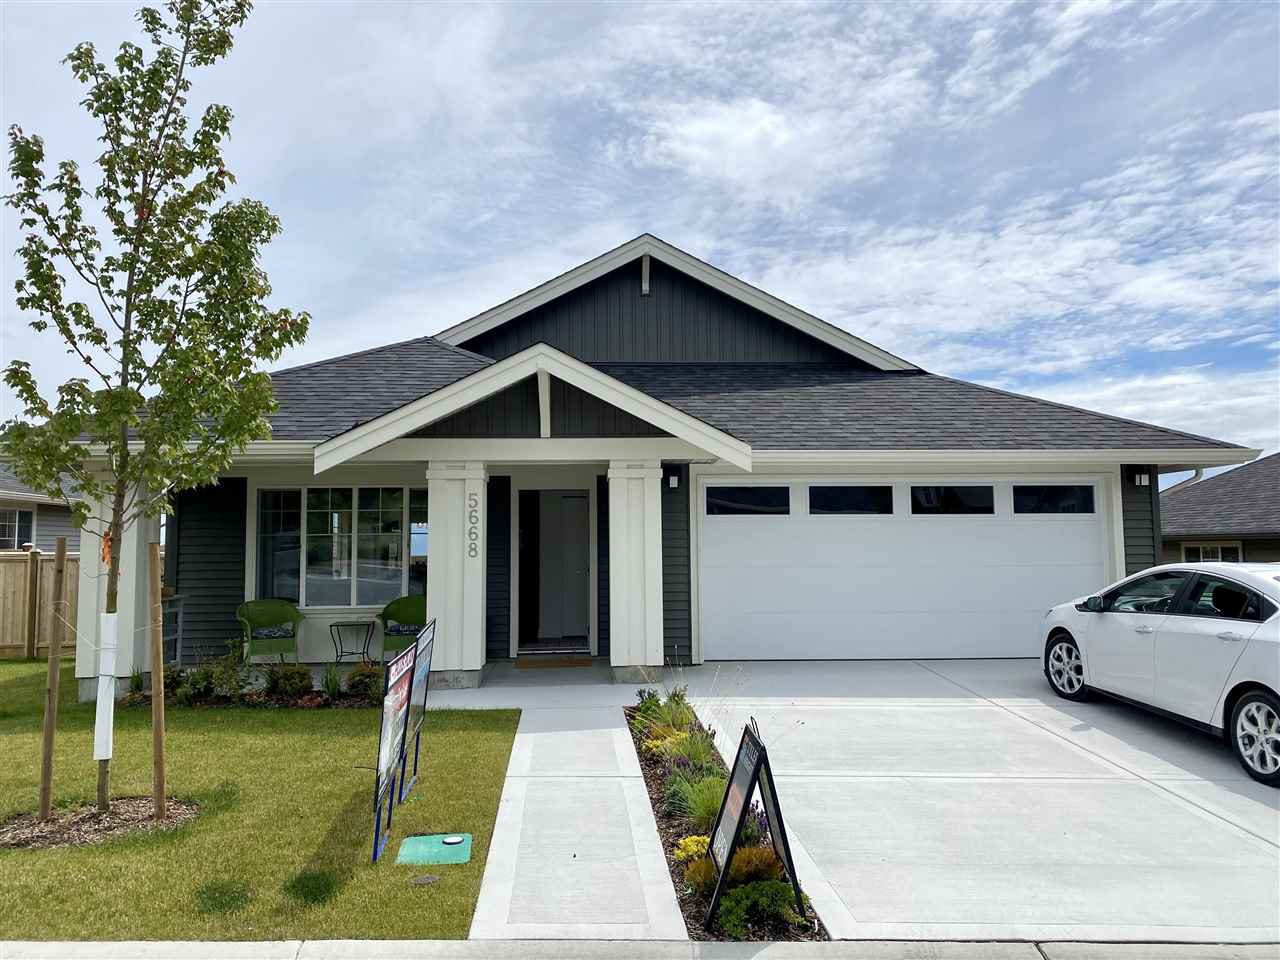 """Main Photo: 5668 PARTRIDGE Way in Sechelt: Sechelt District House for sale in """"TYLER HEIGHTS"""" (Sunshine Coast)  : MLS®# R2370114"""